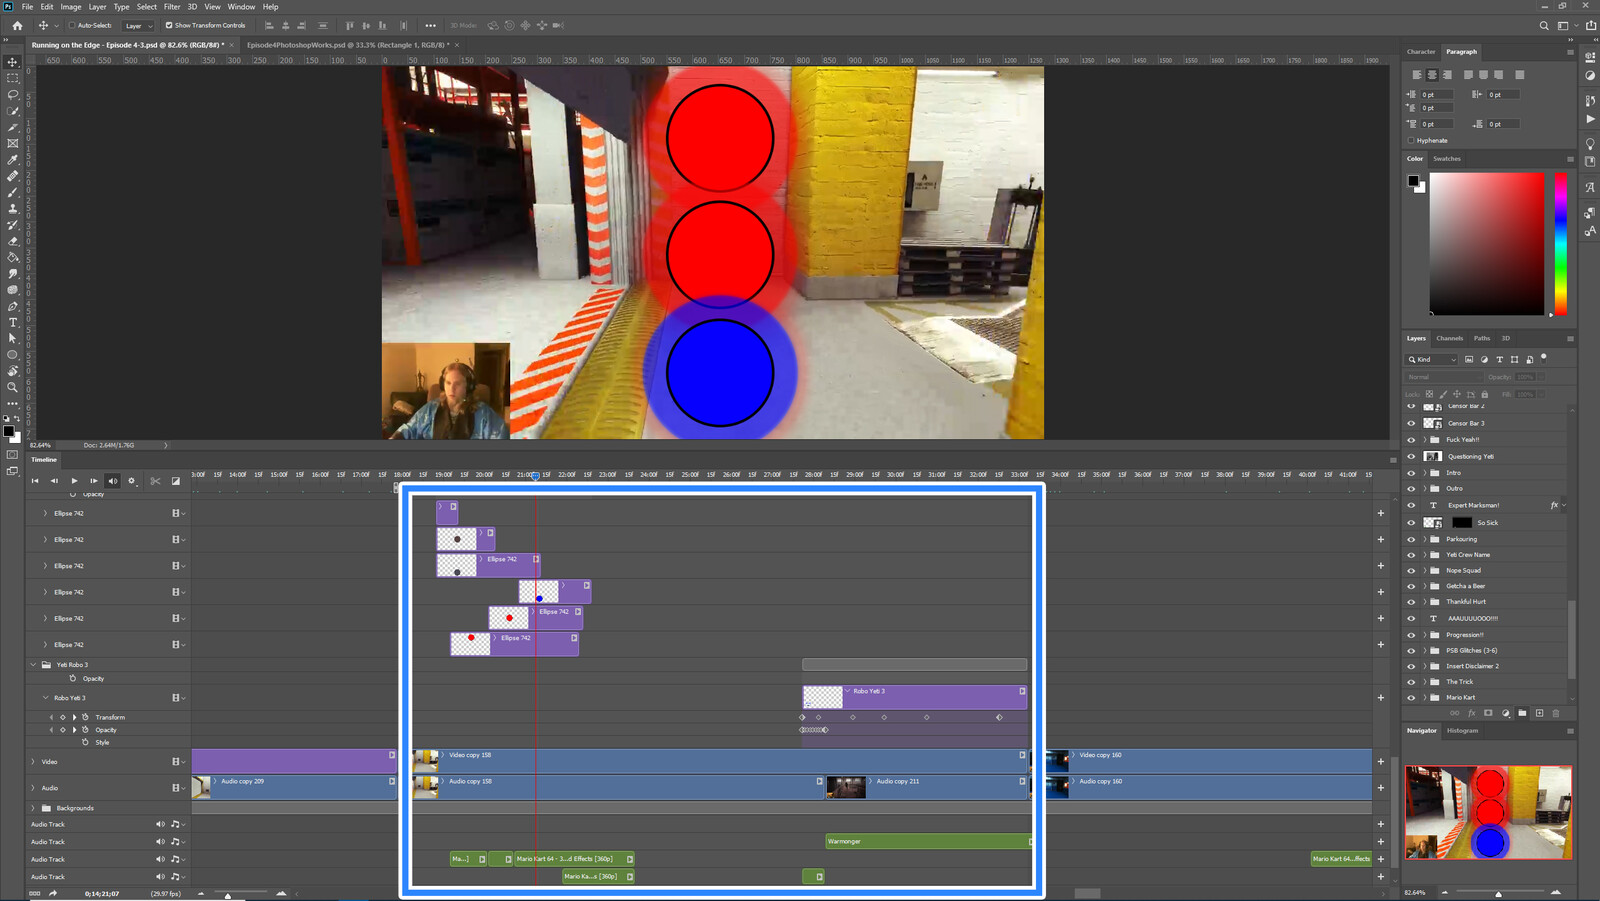 """The """"Kart Hacking"""" visual effect within Photoshop video editor"""